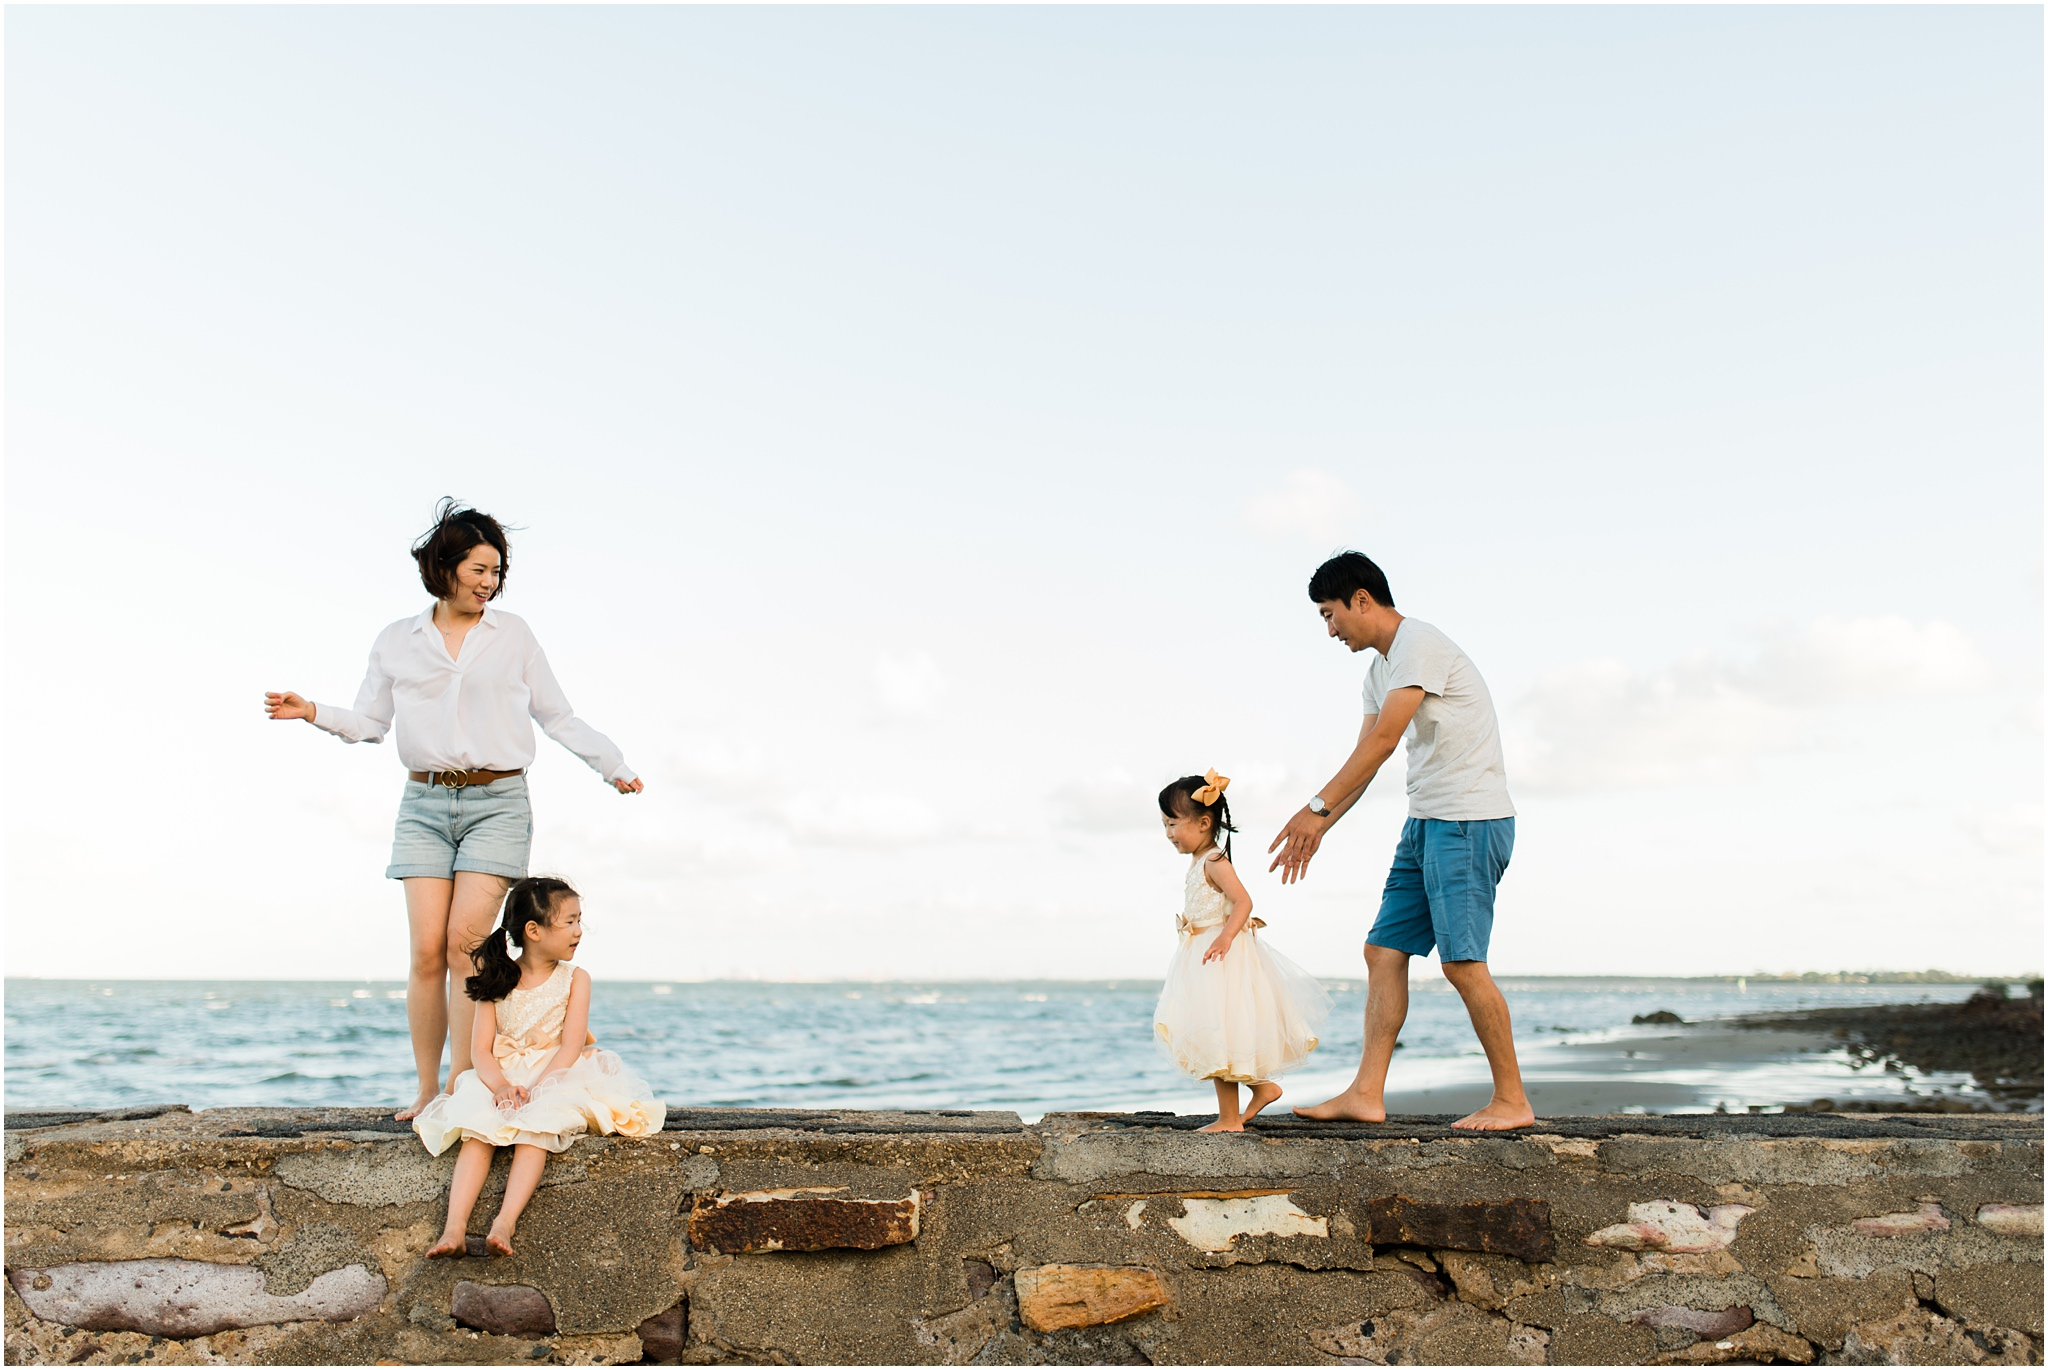 brisbane-sunshine-coast-gold-coast-photographer-family-lifestlye-shorncliffe-pier14.jpg